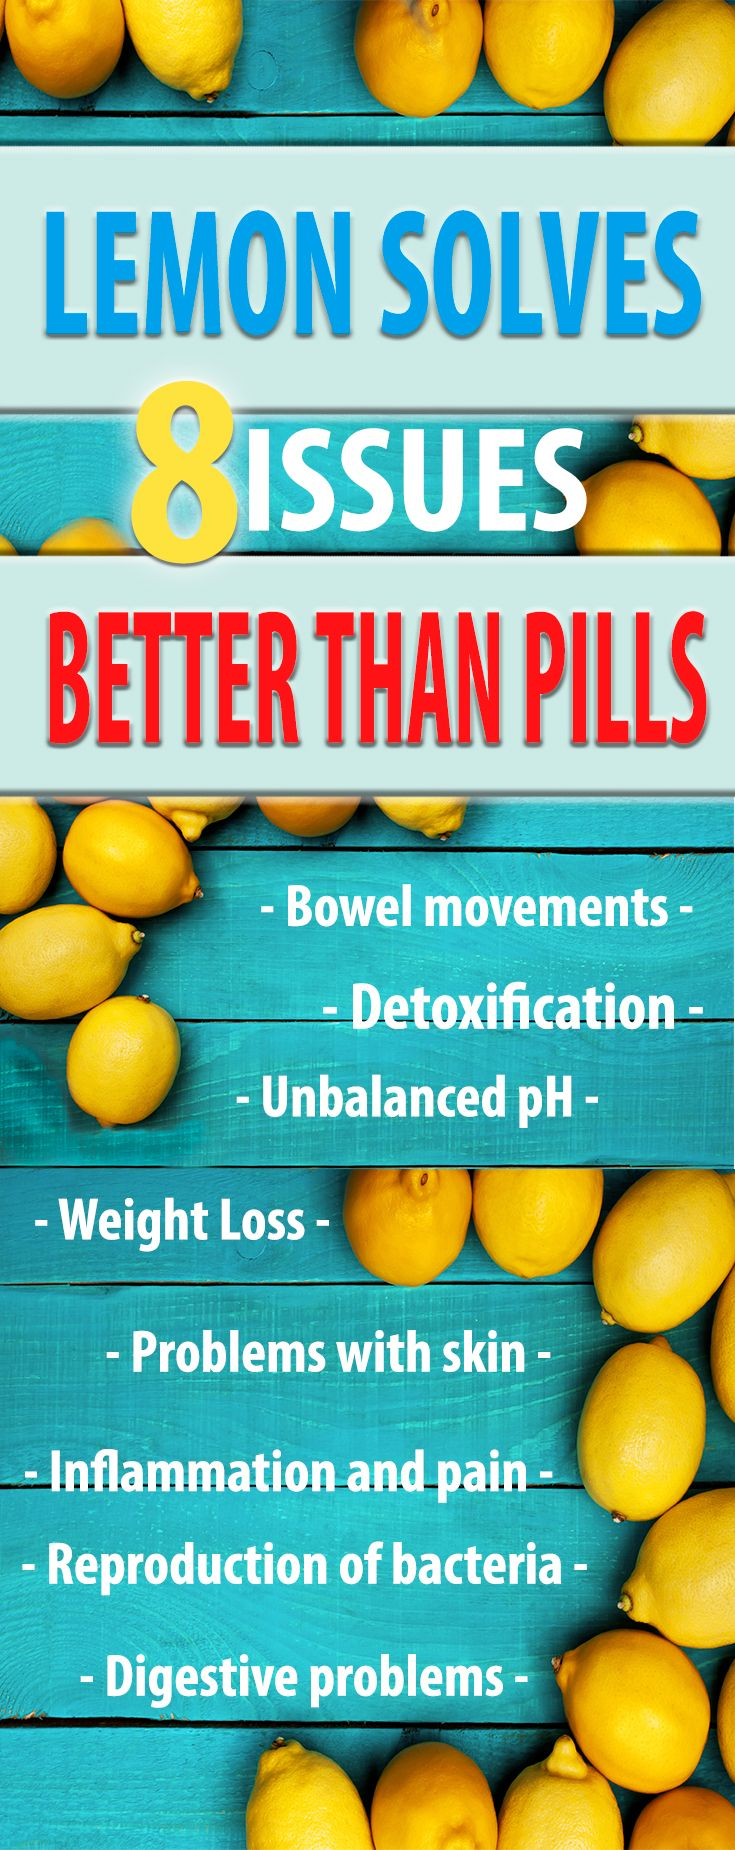 8 Issues That Lemon Solves Better Than Pills